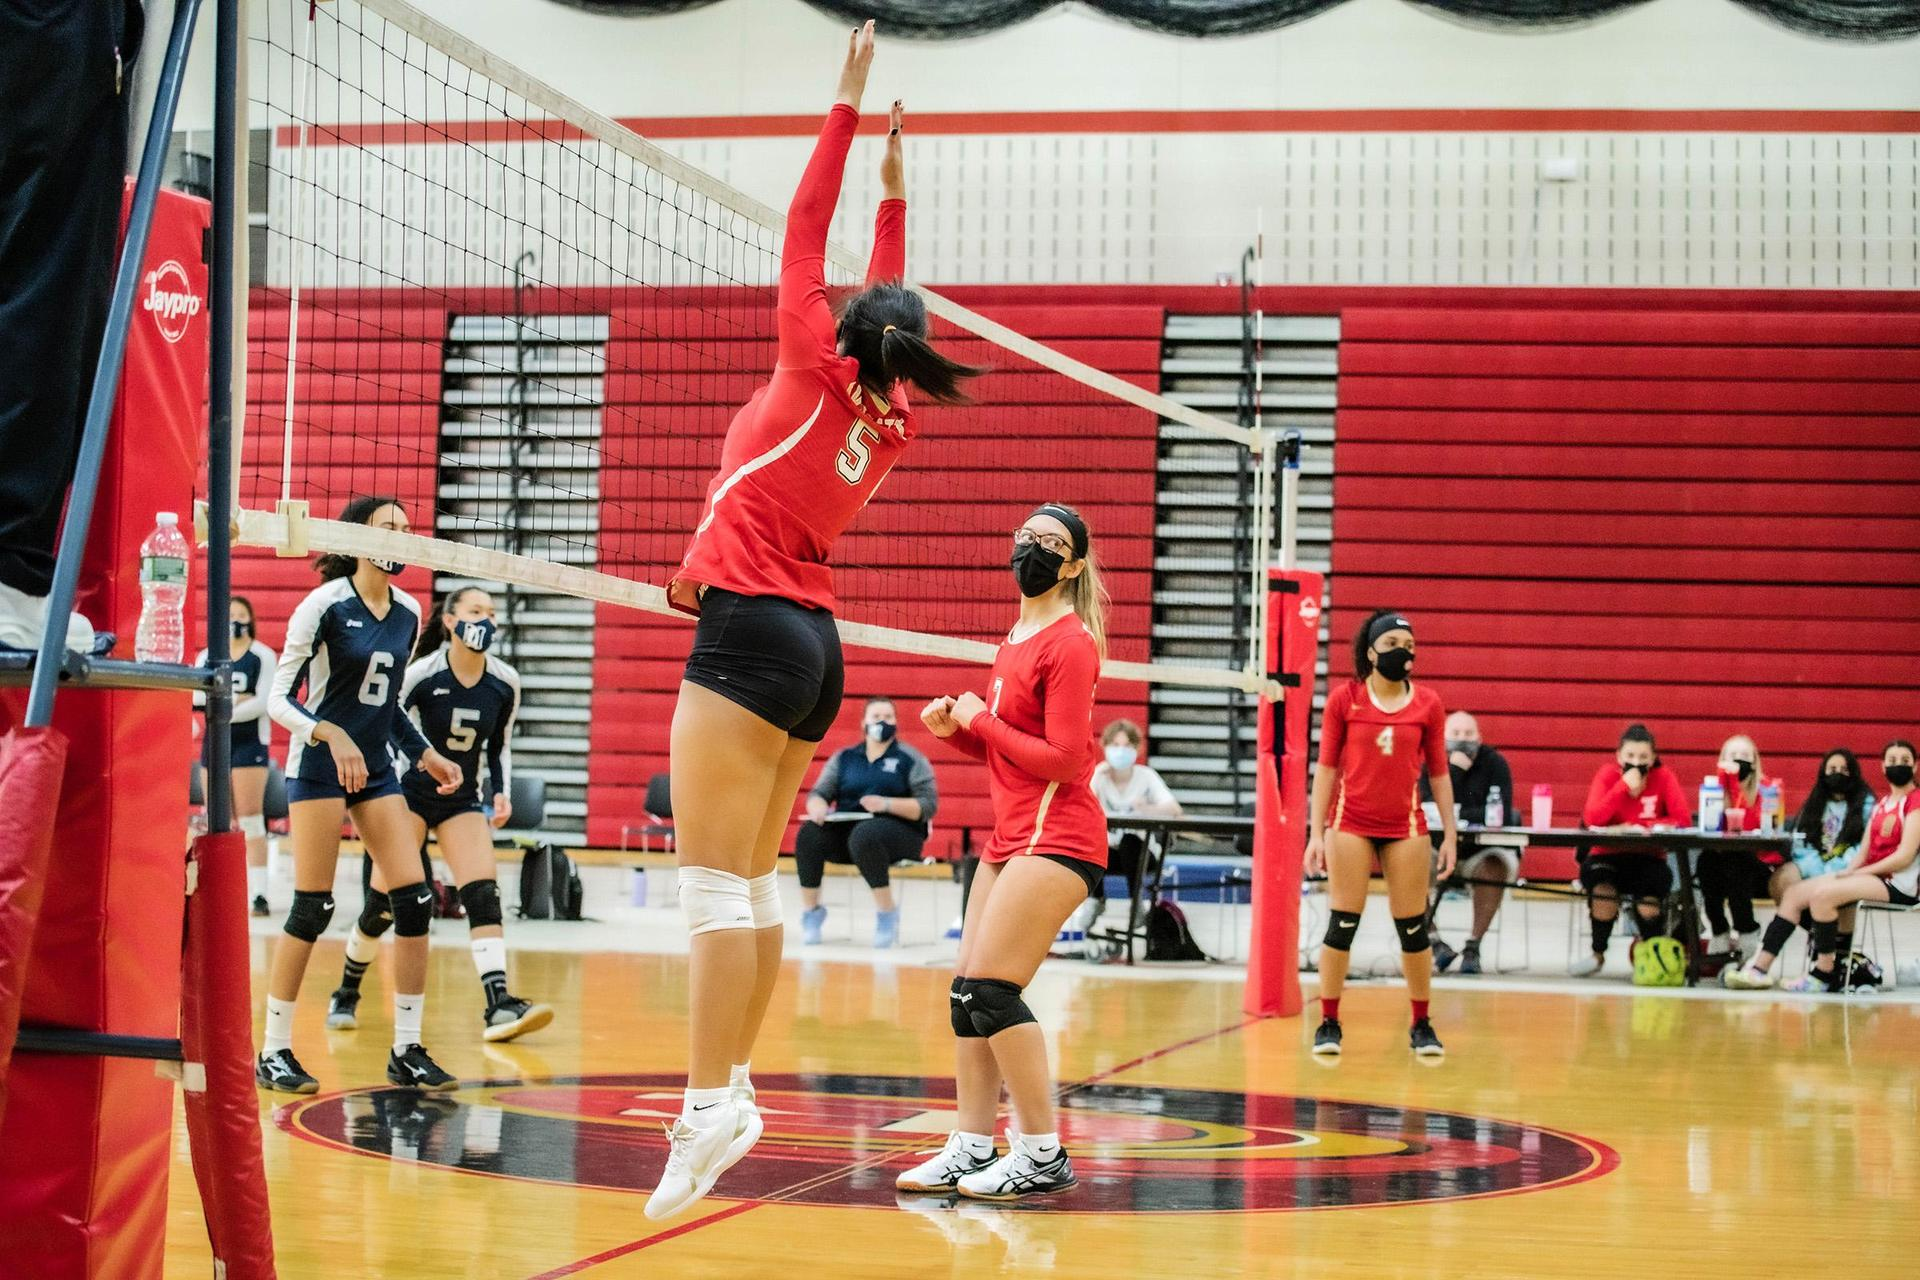 A player leaps to block a shot